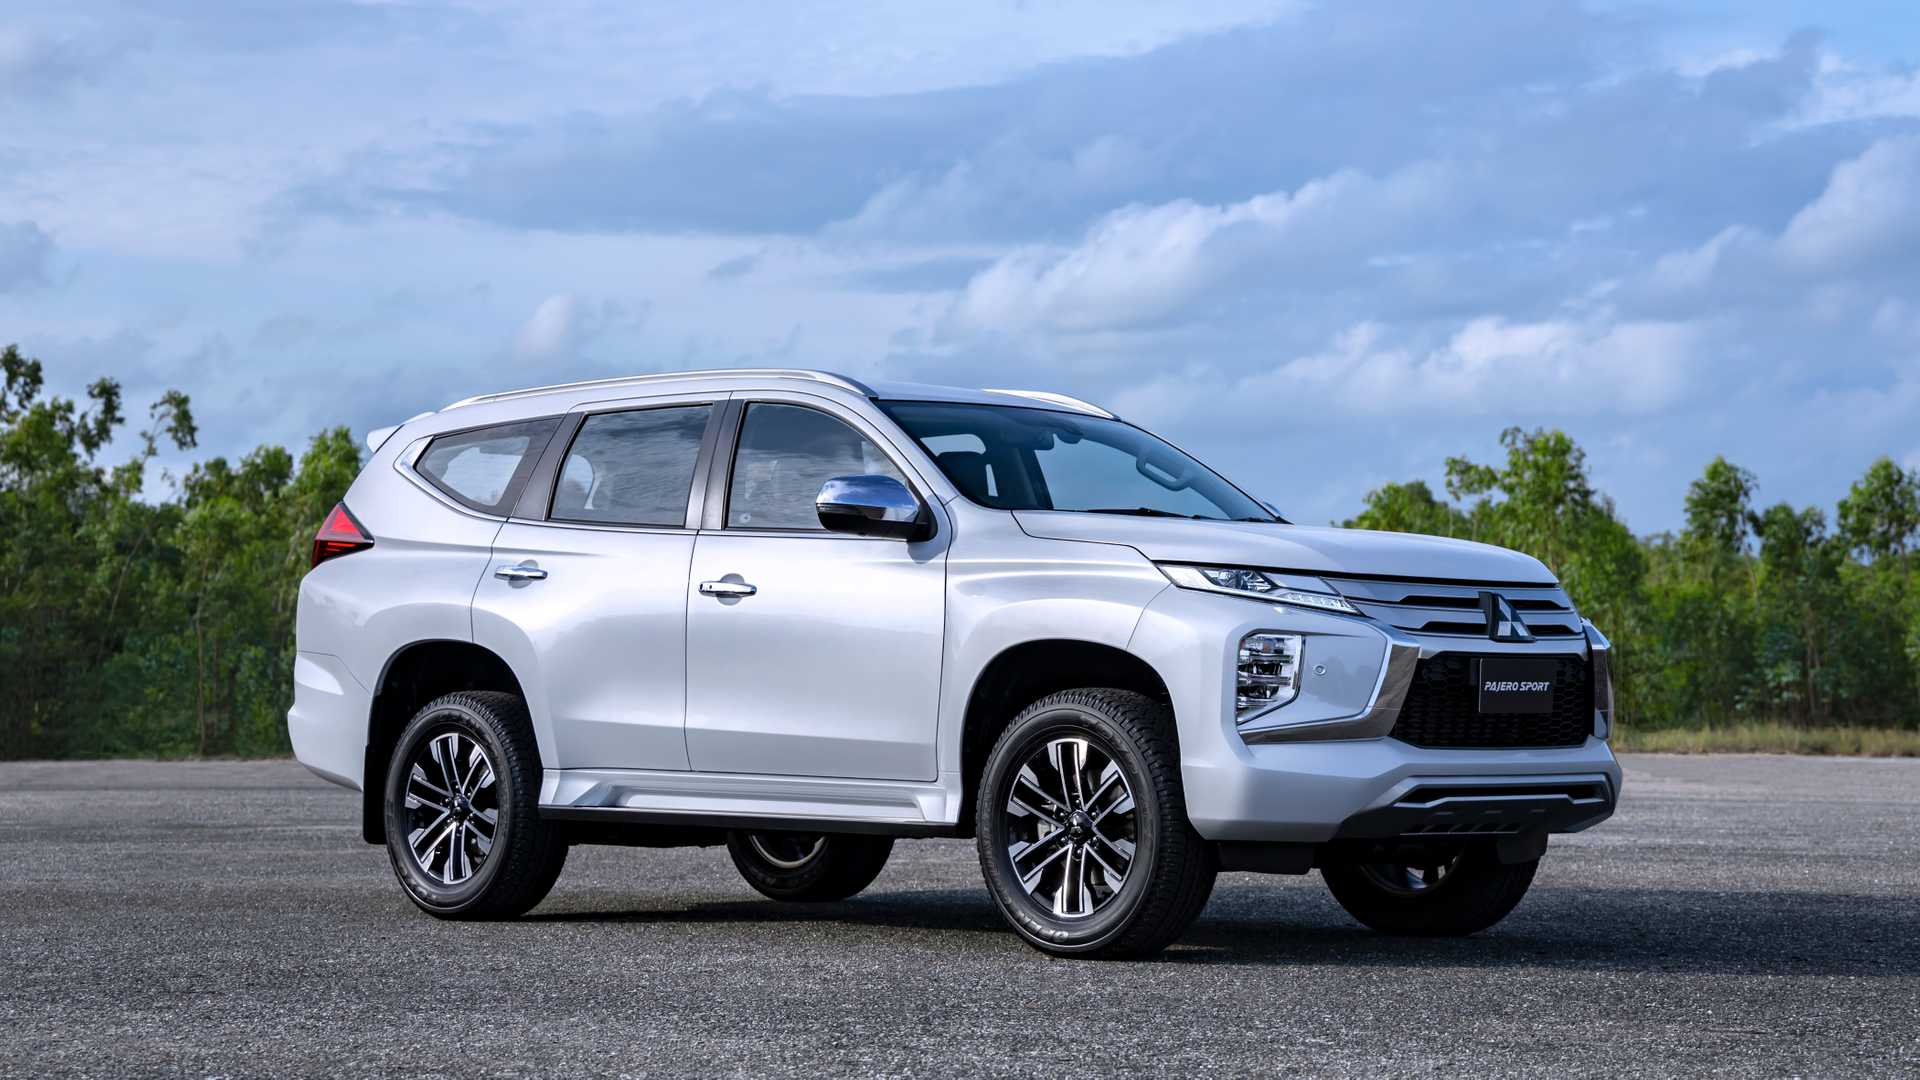 31 All New Mitsubishi Montero Limited 2020 Prices